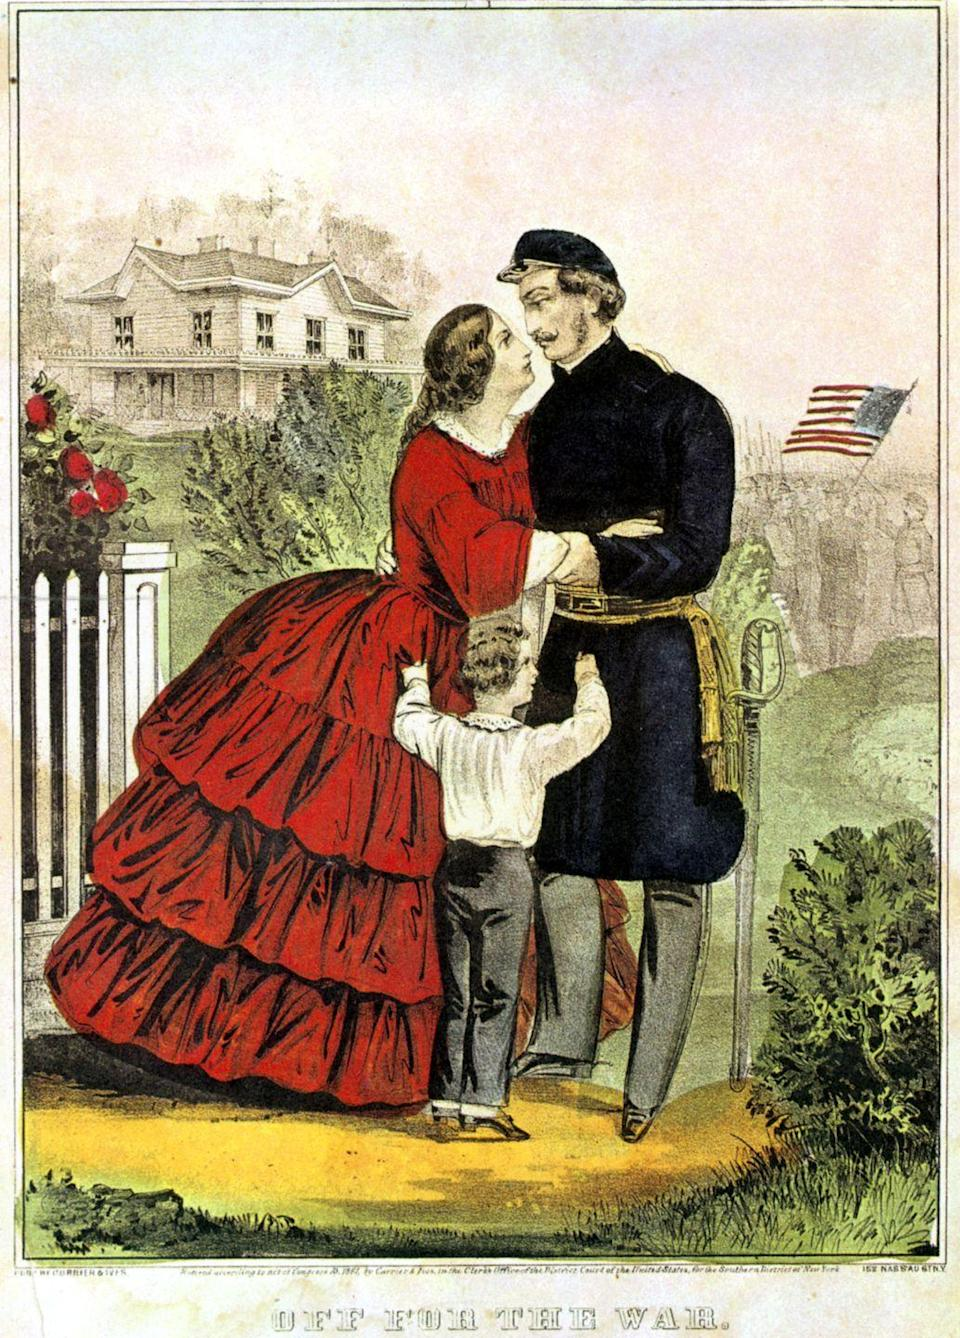 <p>With the United States at war, dresses became simpler in terms of fabric and design. Instead of opulent debutante gowns, women would wear full skirts made of just one material.</p>